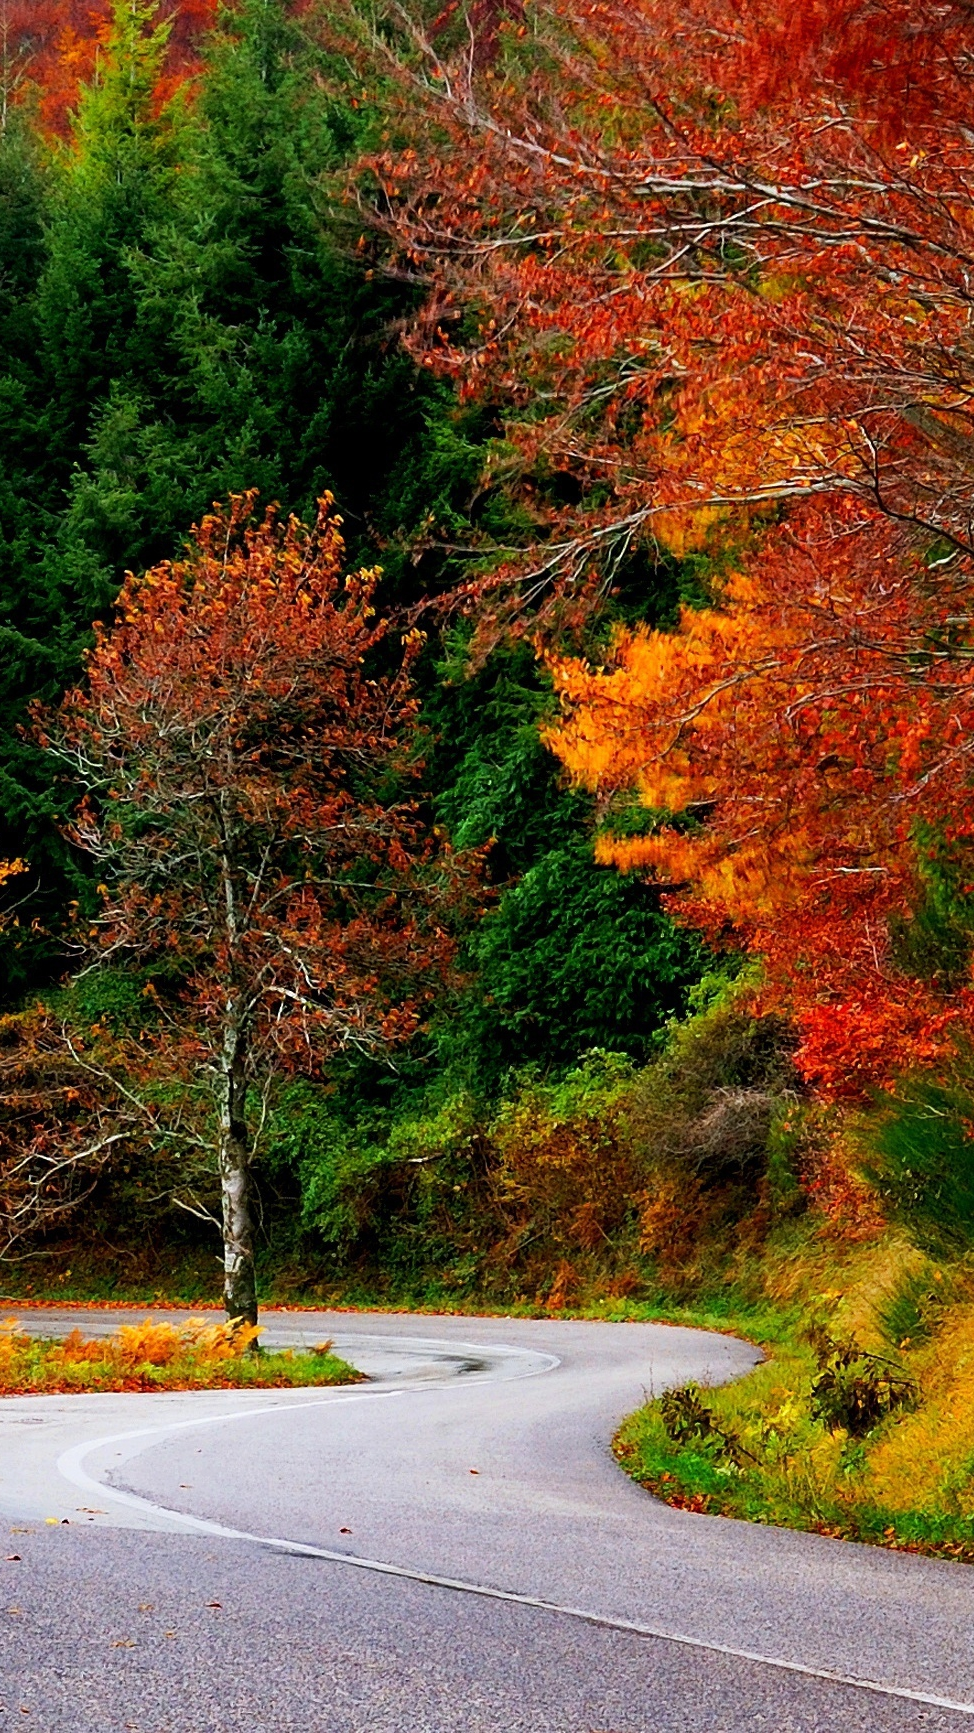 Wallpaper For Phones Fall Forest Autumn Fall Road Leaves Trees Colorful Nature